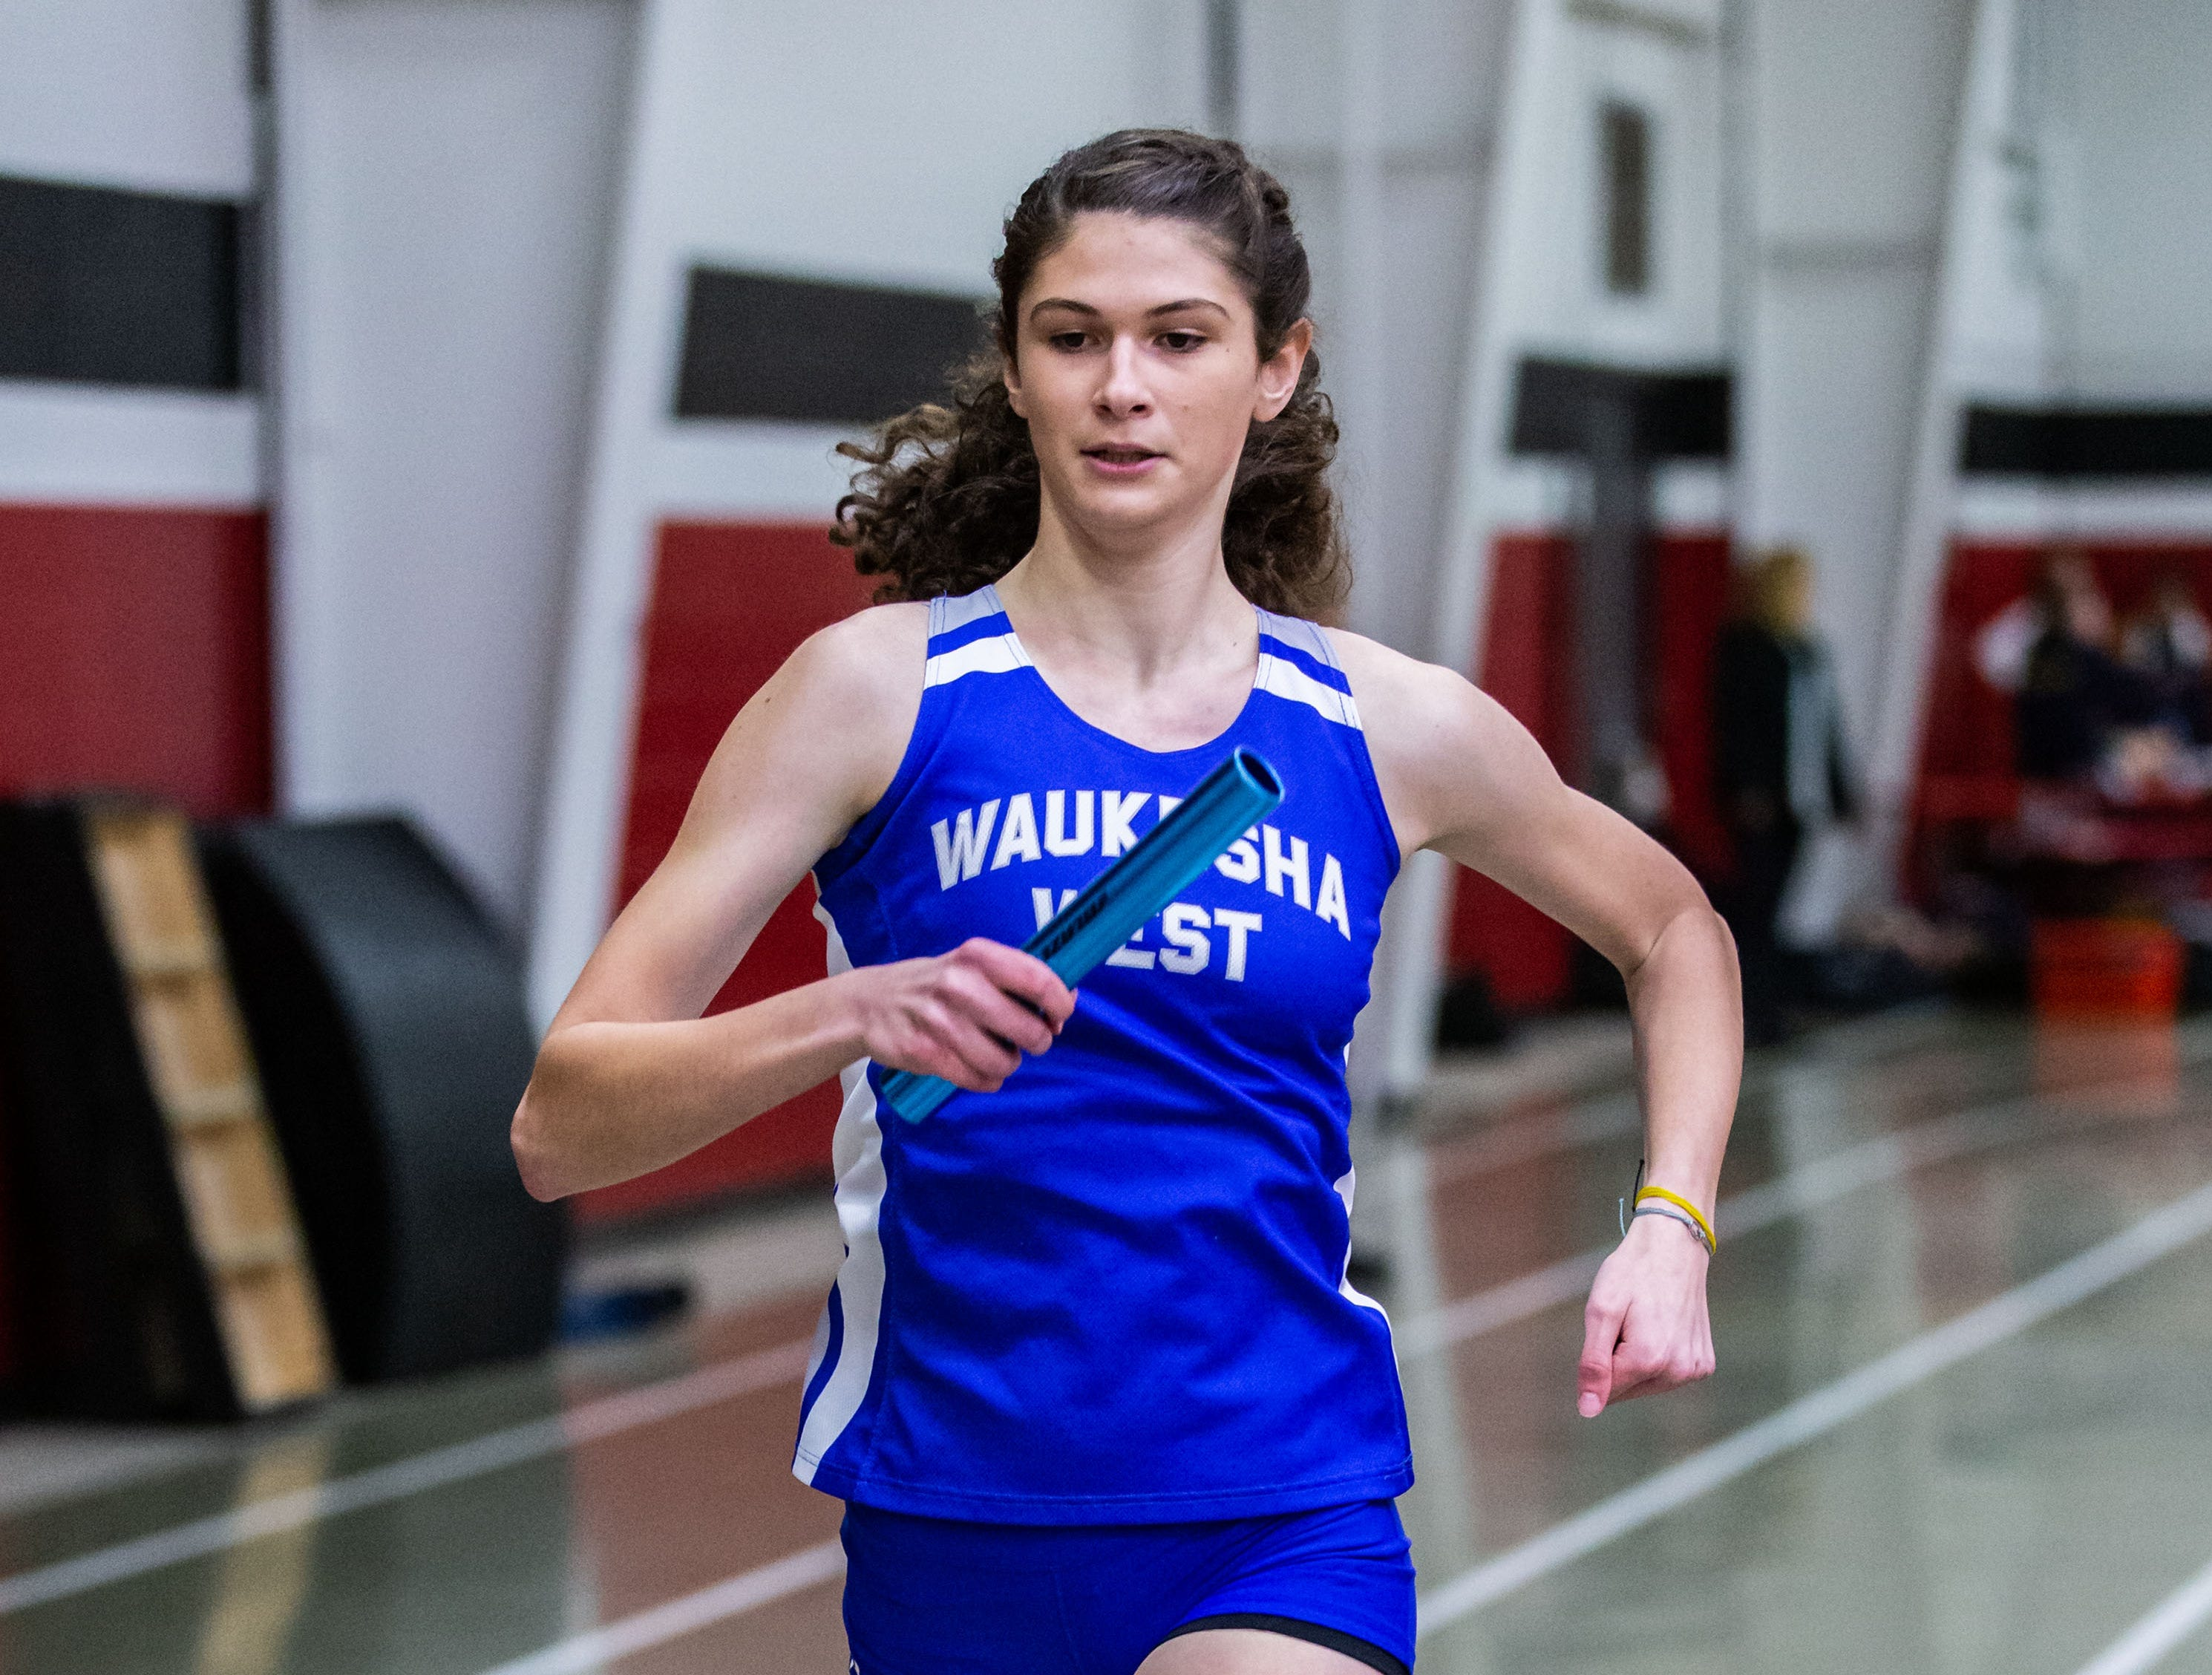 Waukesha West's Erin Phelan competes in the 4x440 yard relay at the Peter Rempe Cardinal Relays hosted by Waukesha South on Thursday, March 21, 2019. West won the event with a time of 4:21.90.